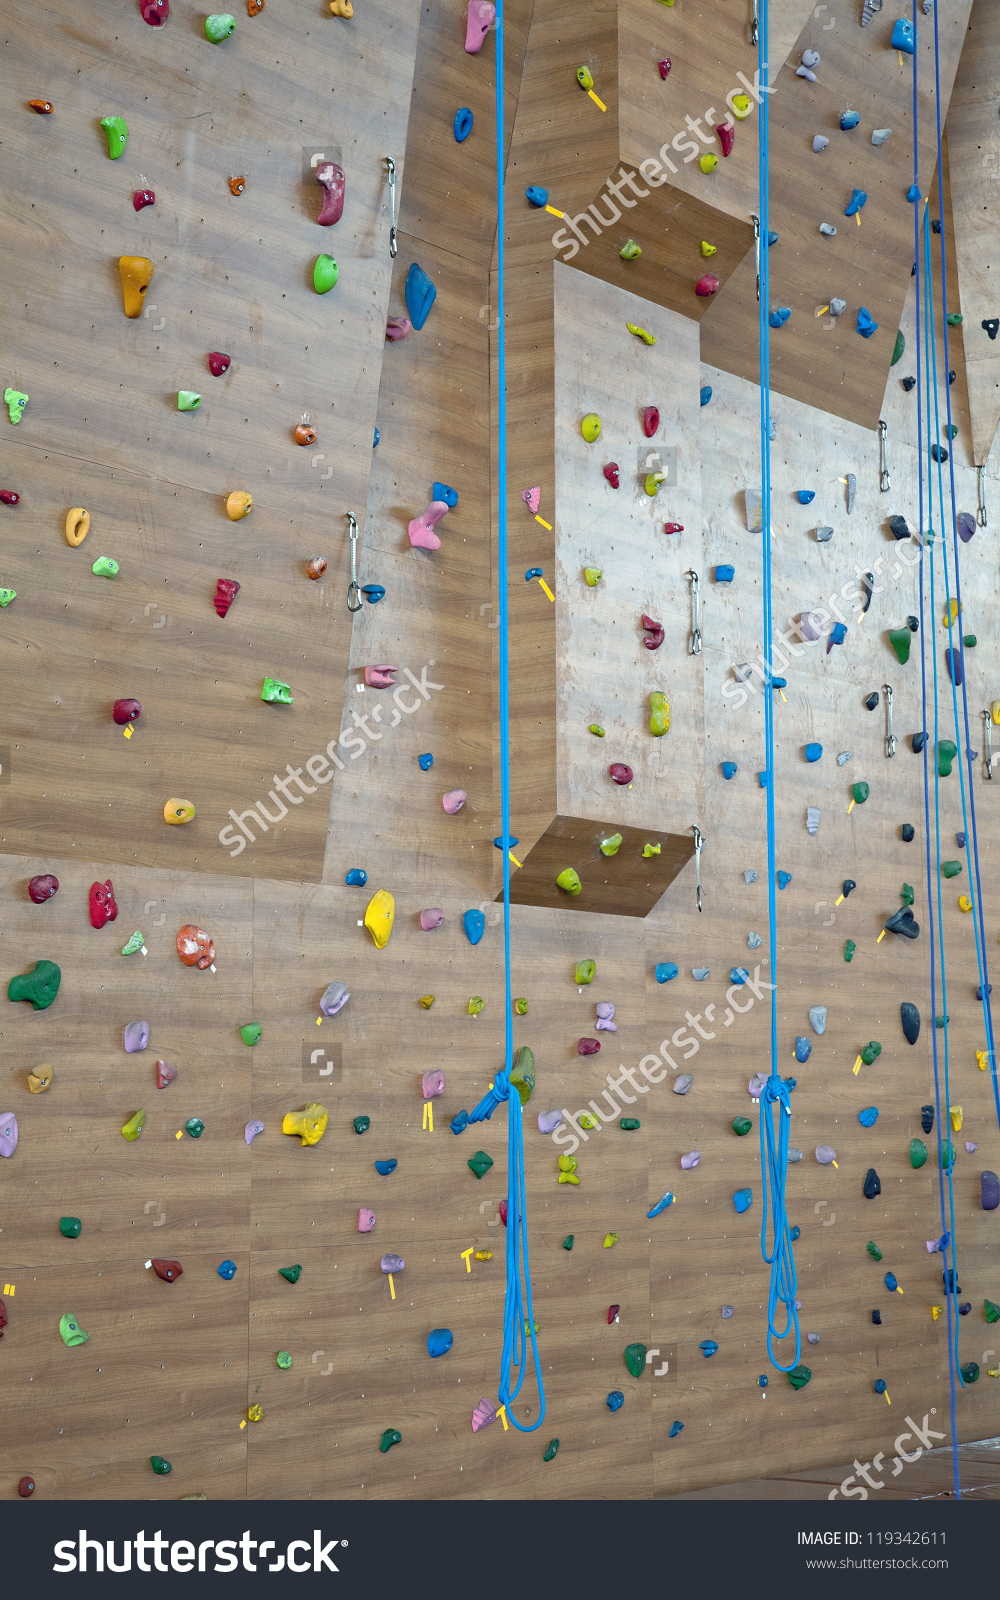 Grungy Surface Of An Artificial Rock Climbing Wall With Toe And.